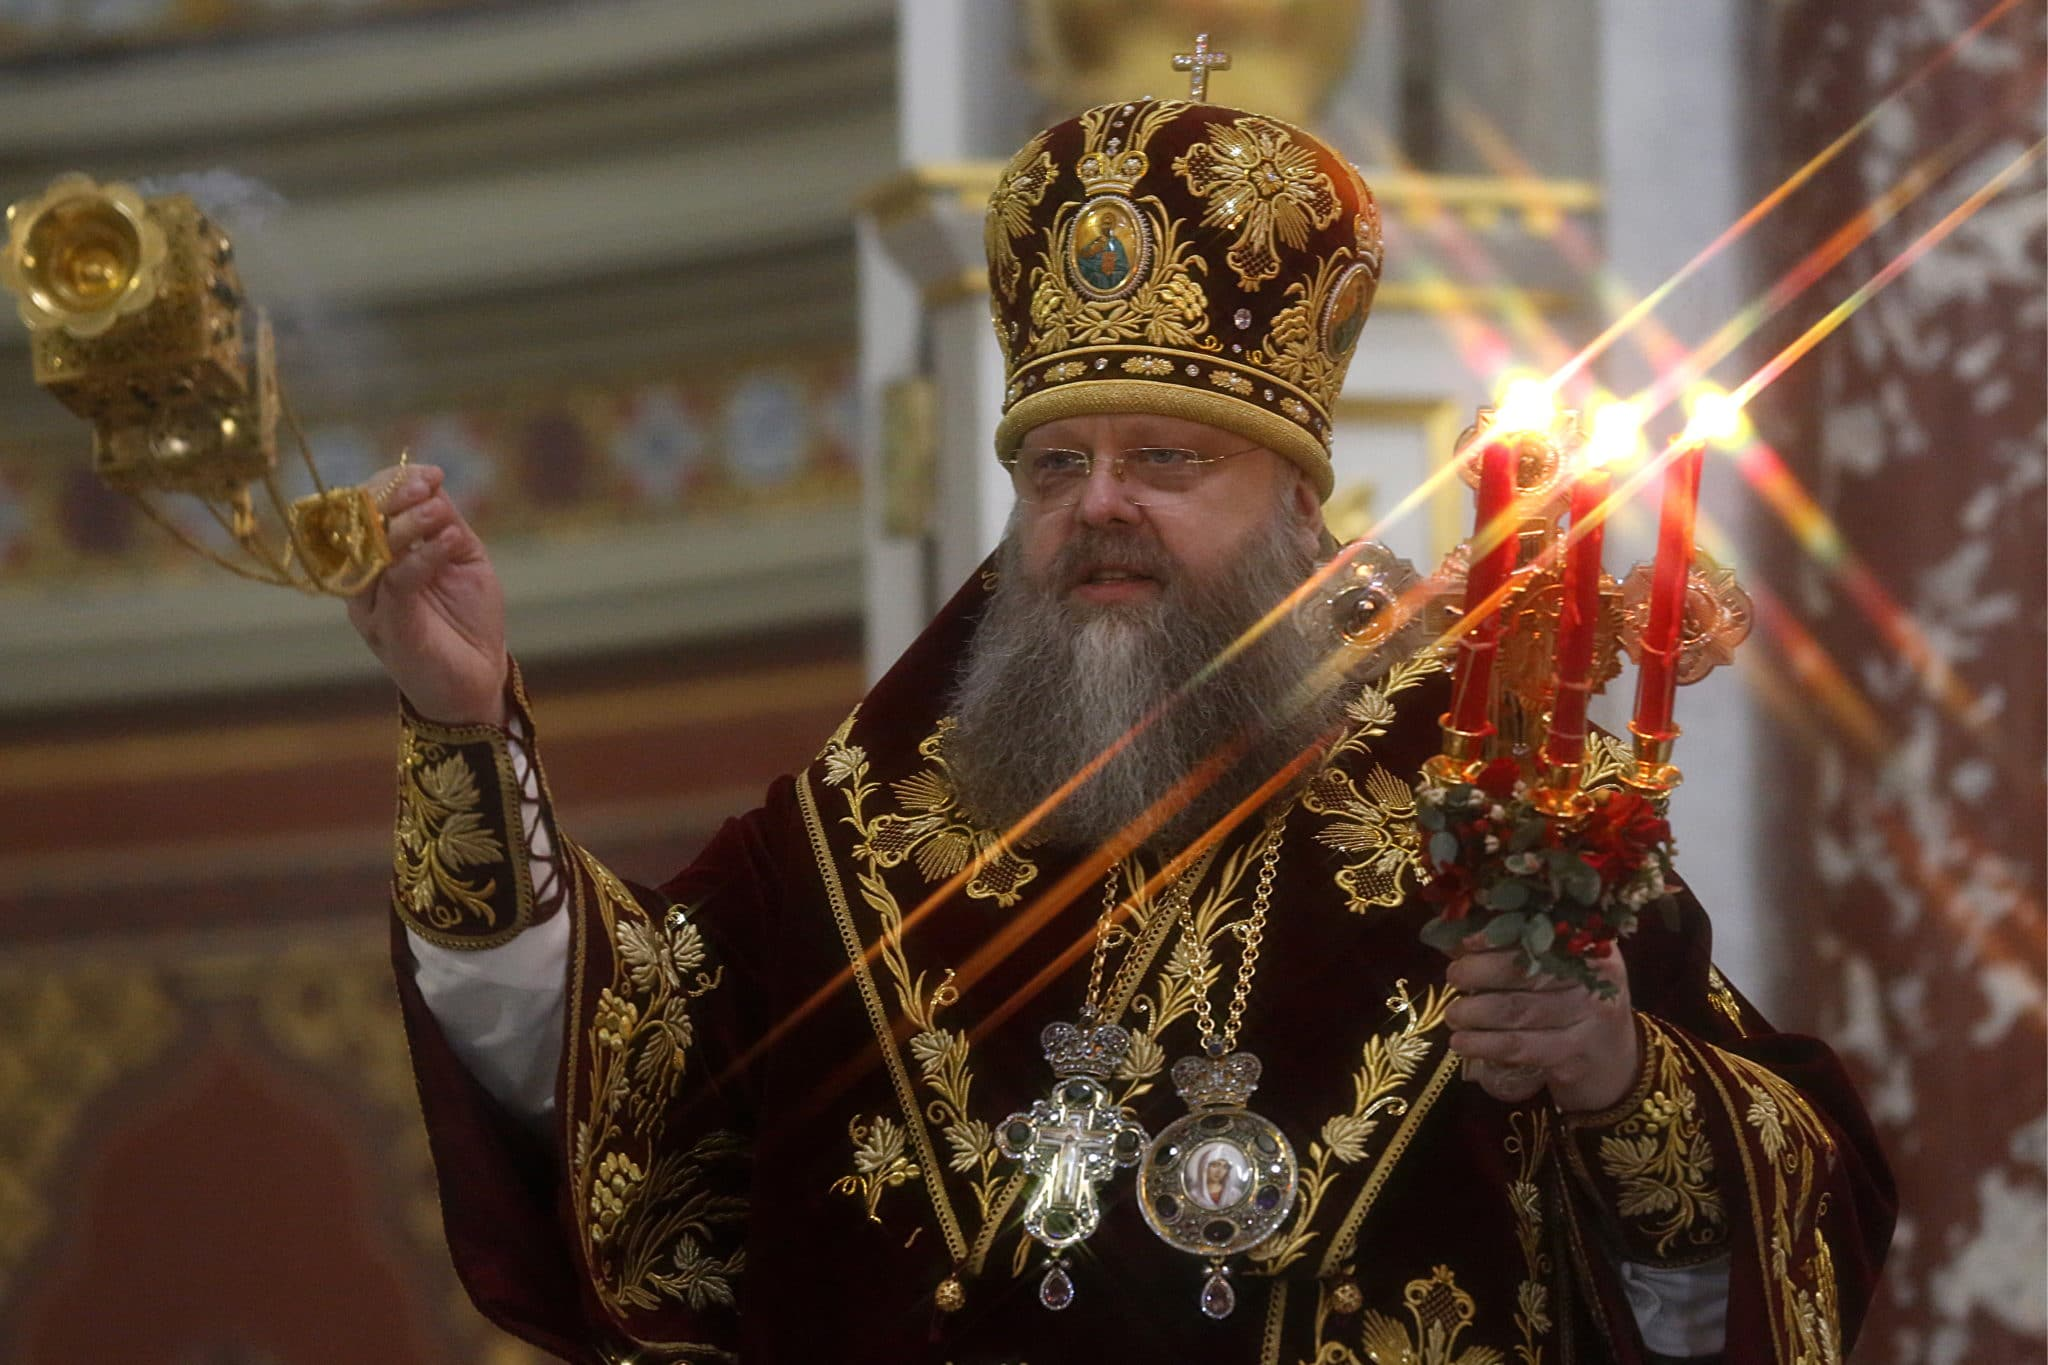 Gay Russian priest who fled to Holland after coming out claims clergy have sex to get promotions